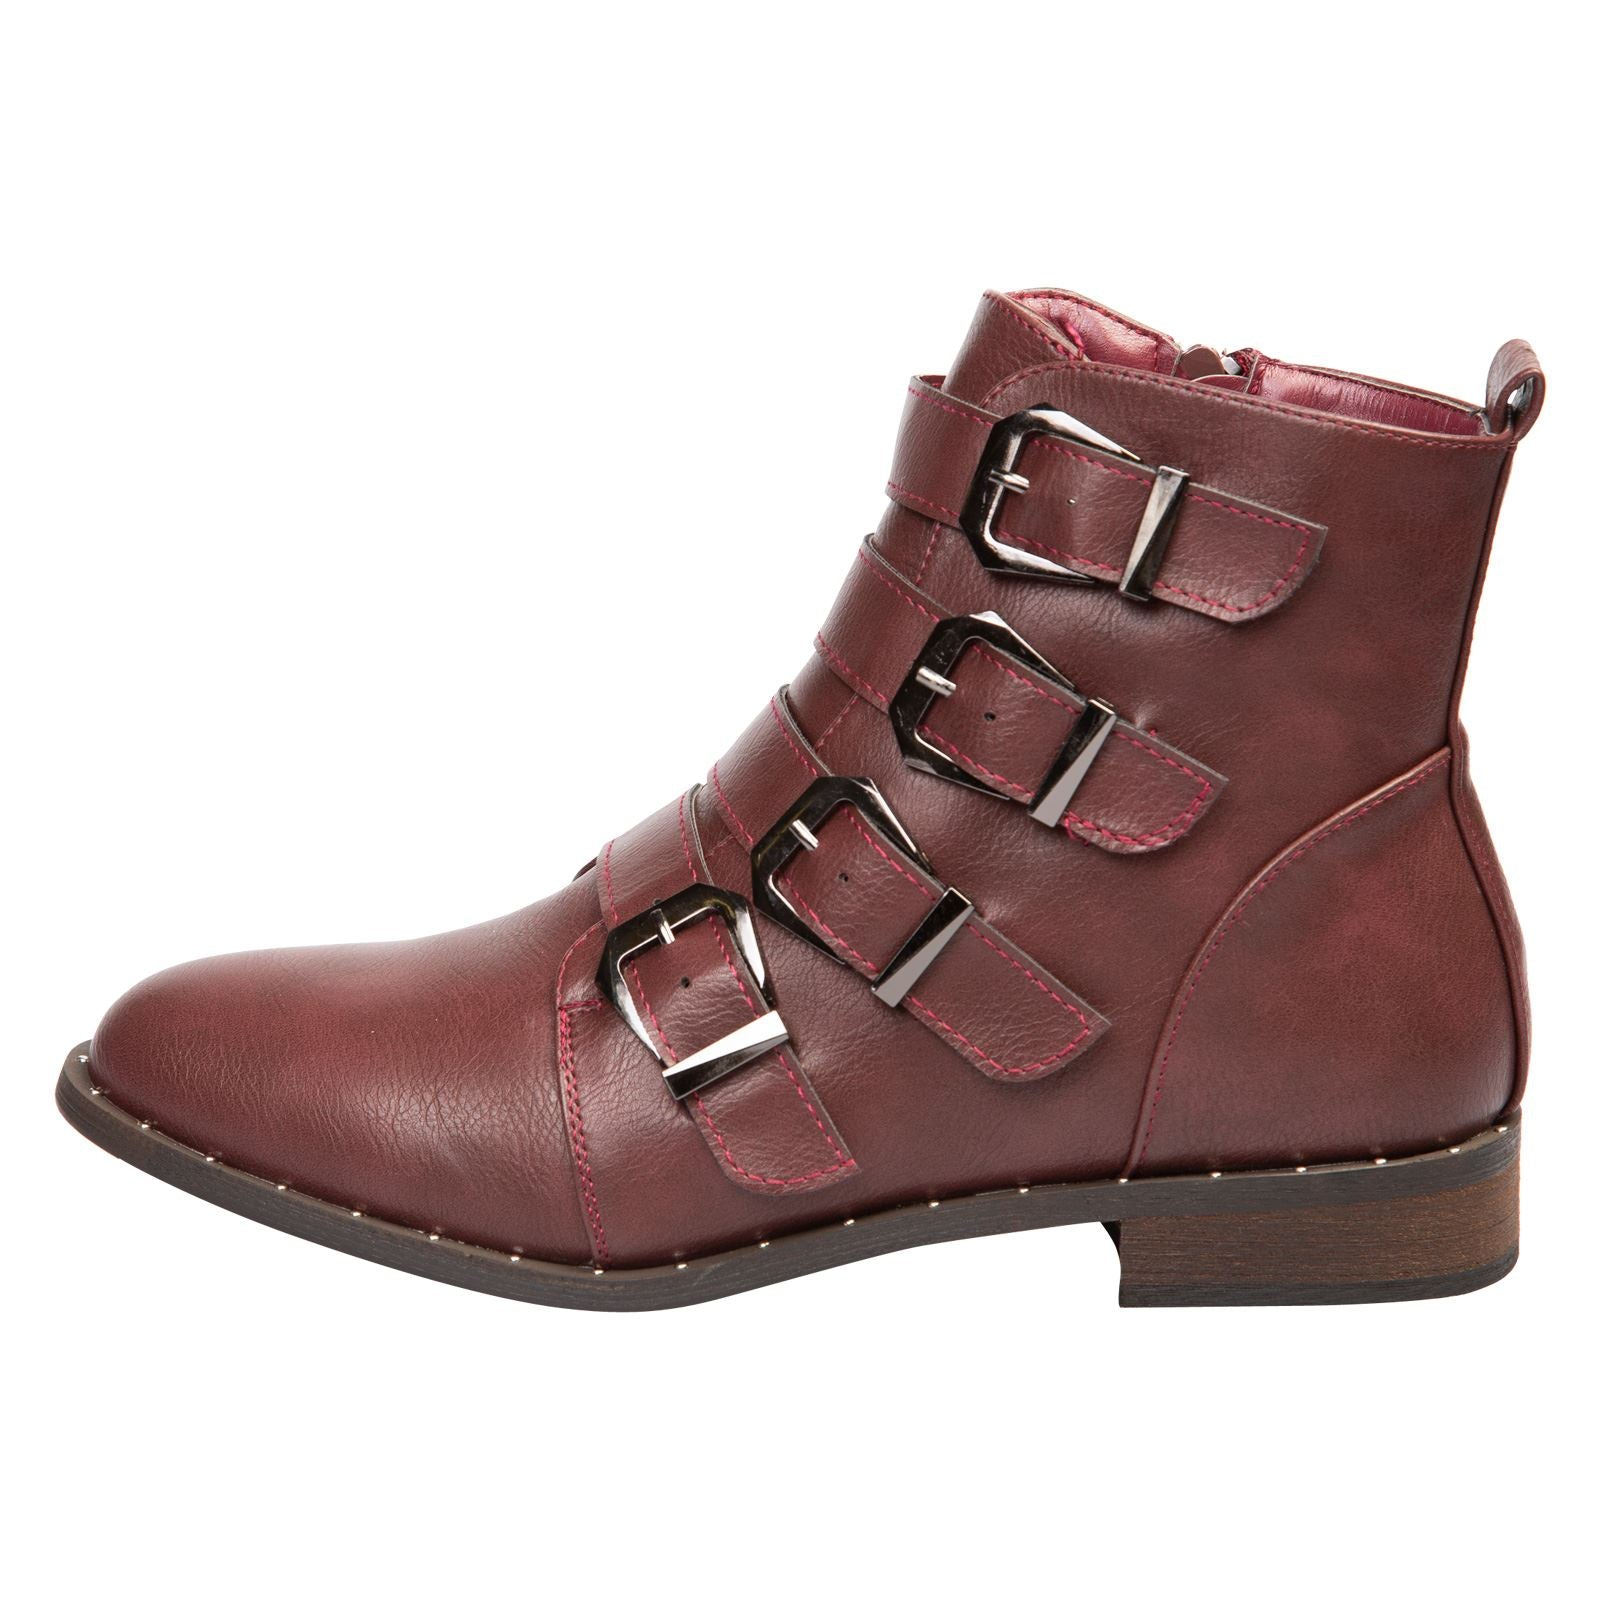 Harley Strappy Biker Boots in Wine Red Faux Leather - Feet First Fashion